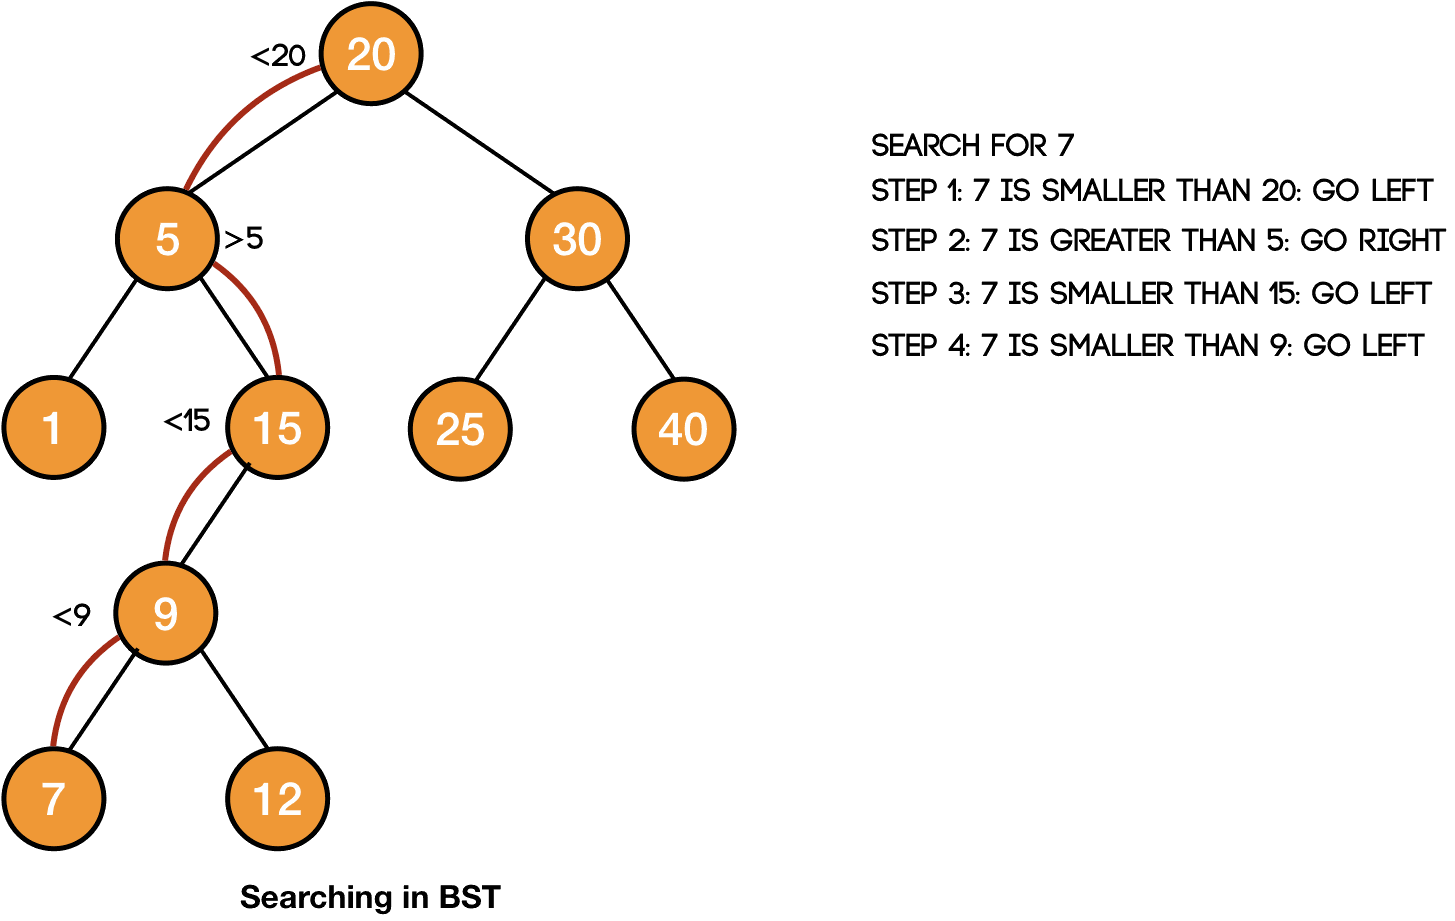 searching in a binary search tree